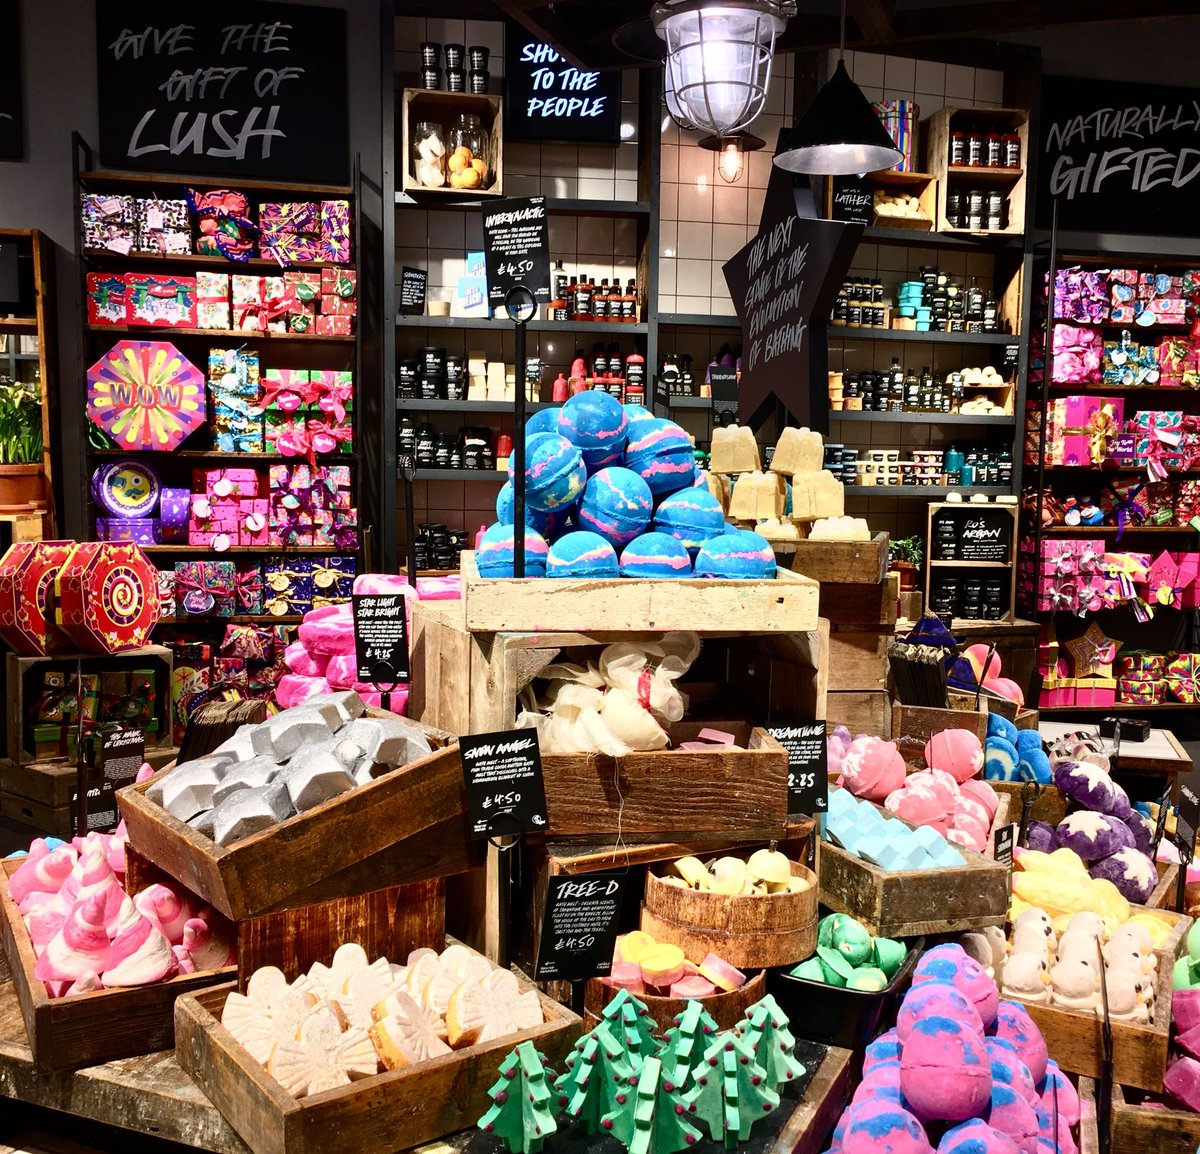 Lush quitting social media, but will it last?